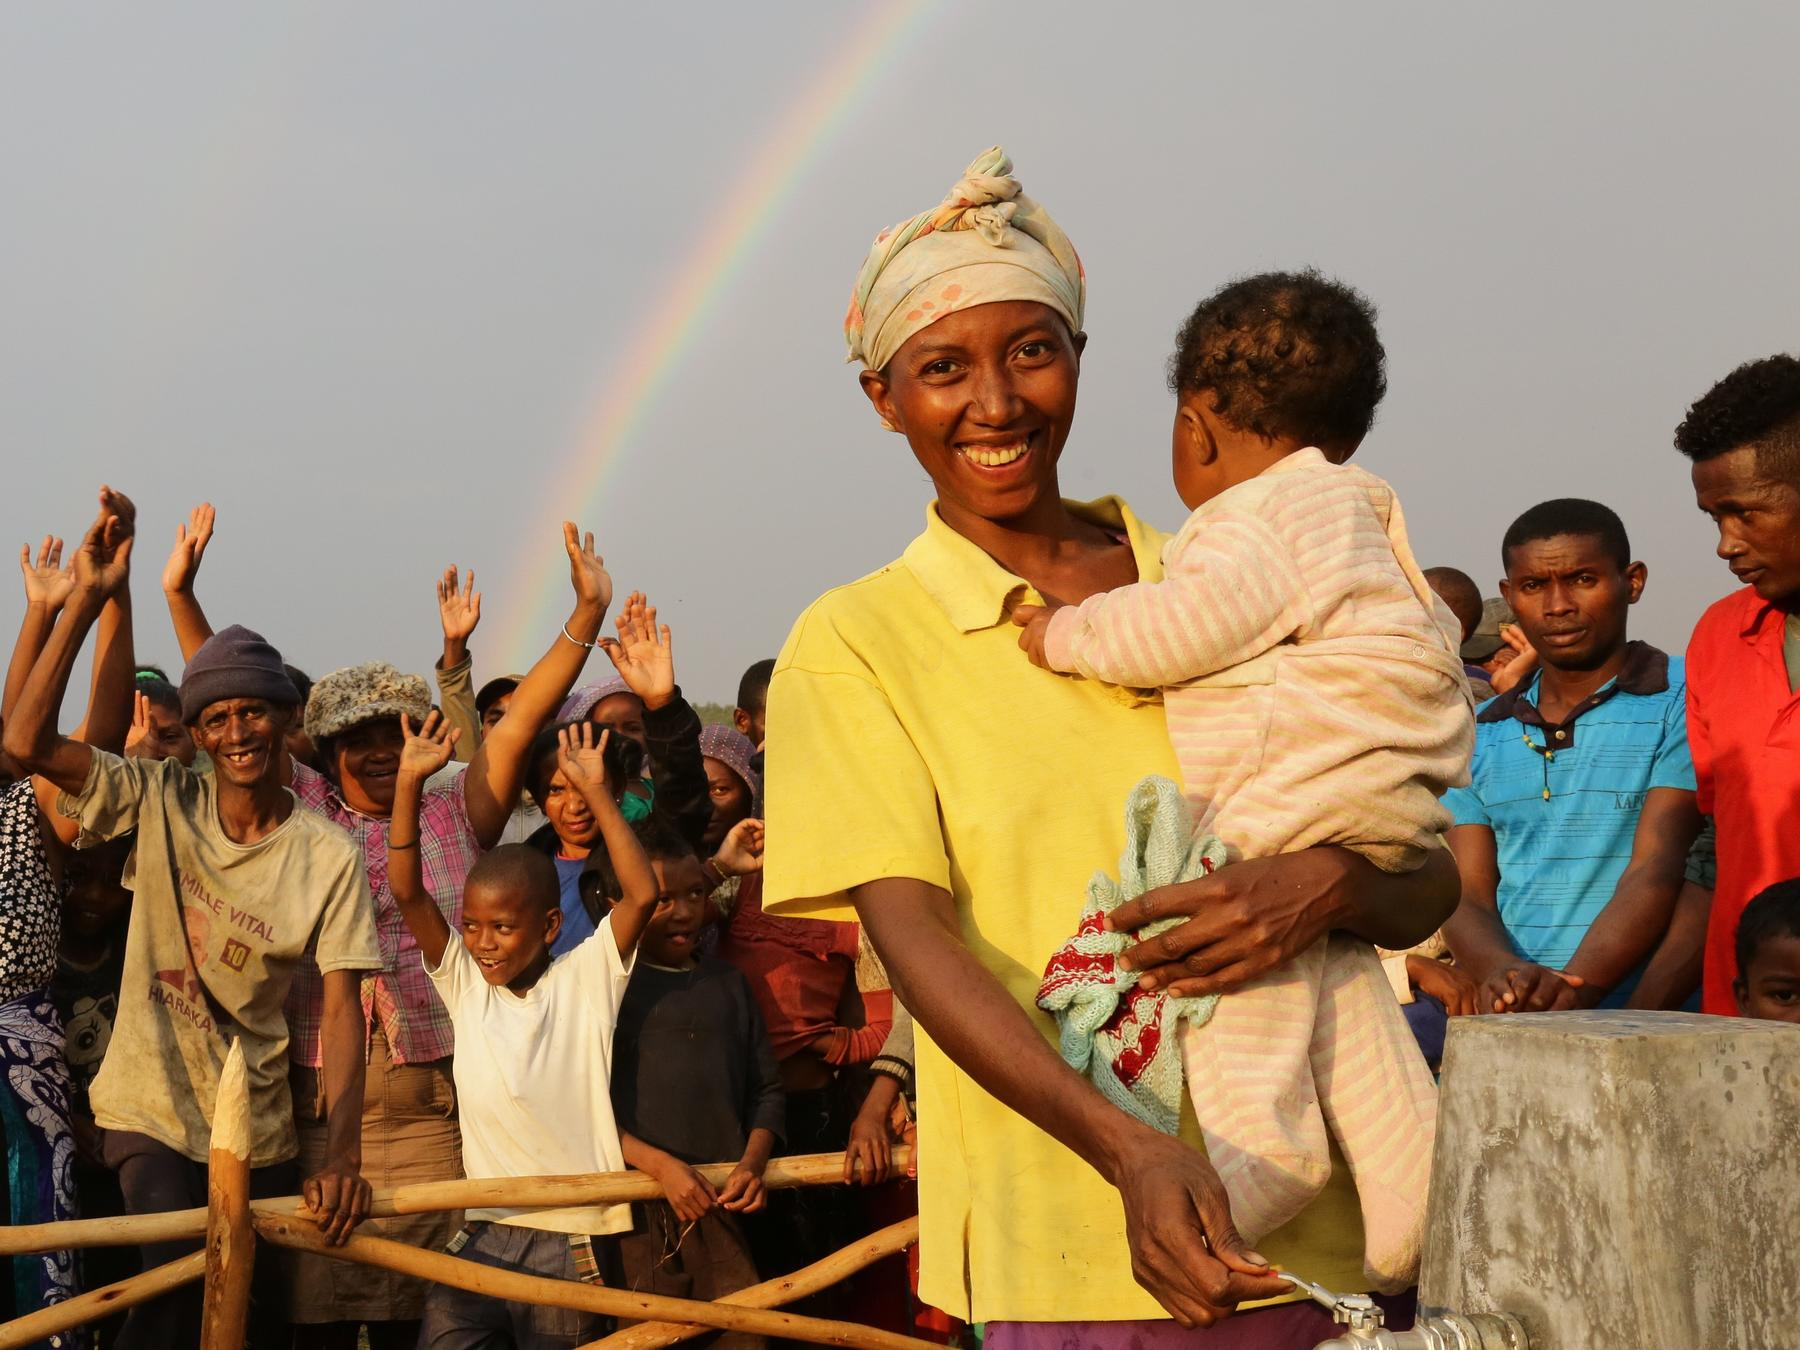 A happy group photo of villagers in Madagascar with Raoly, and her baby girl, Natasha.